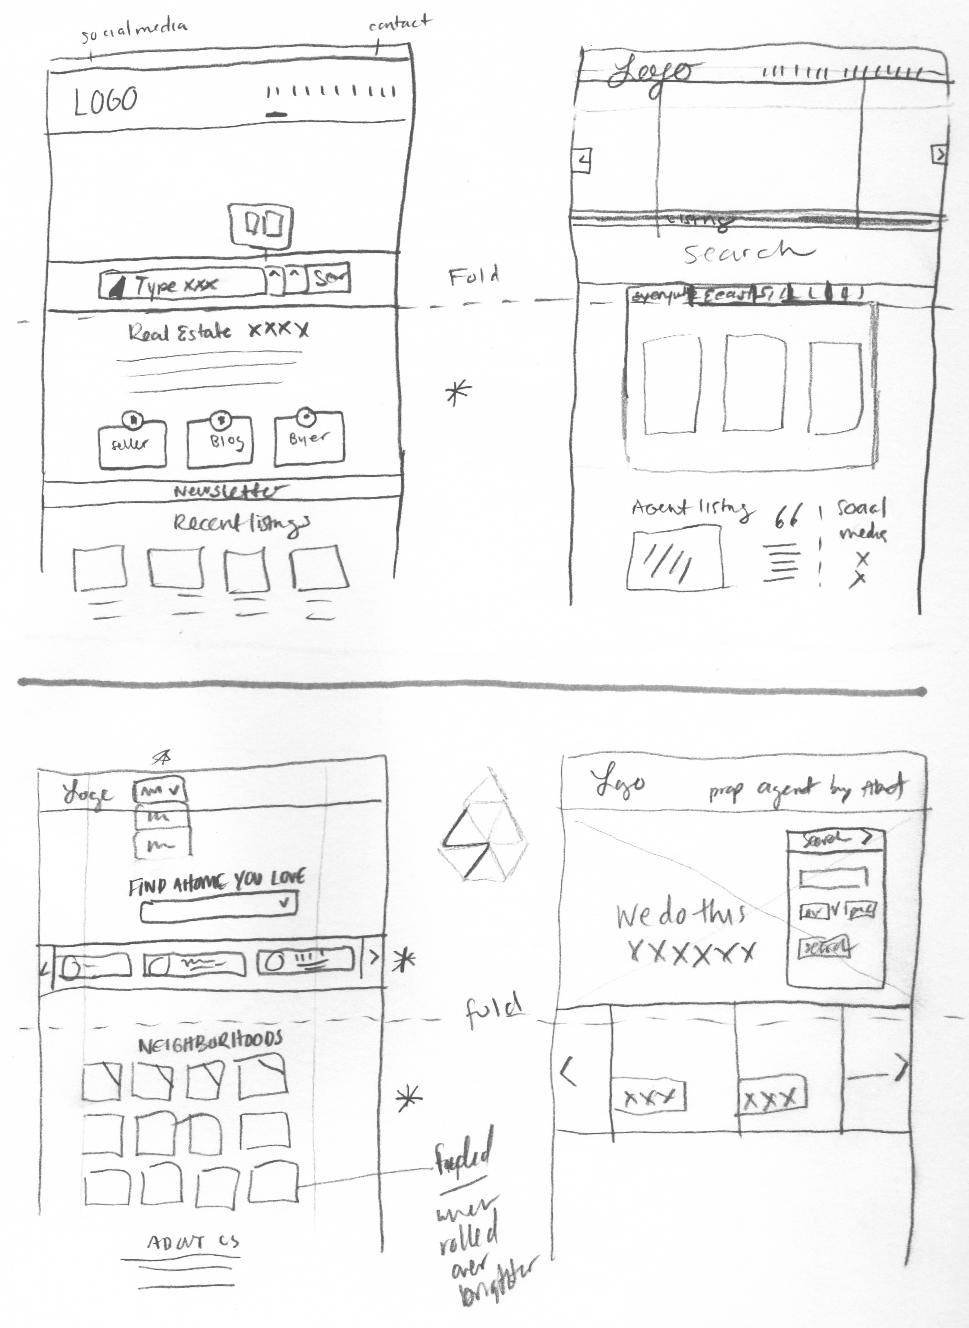 An example of early sketches for a website design